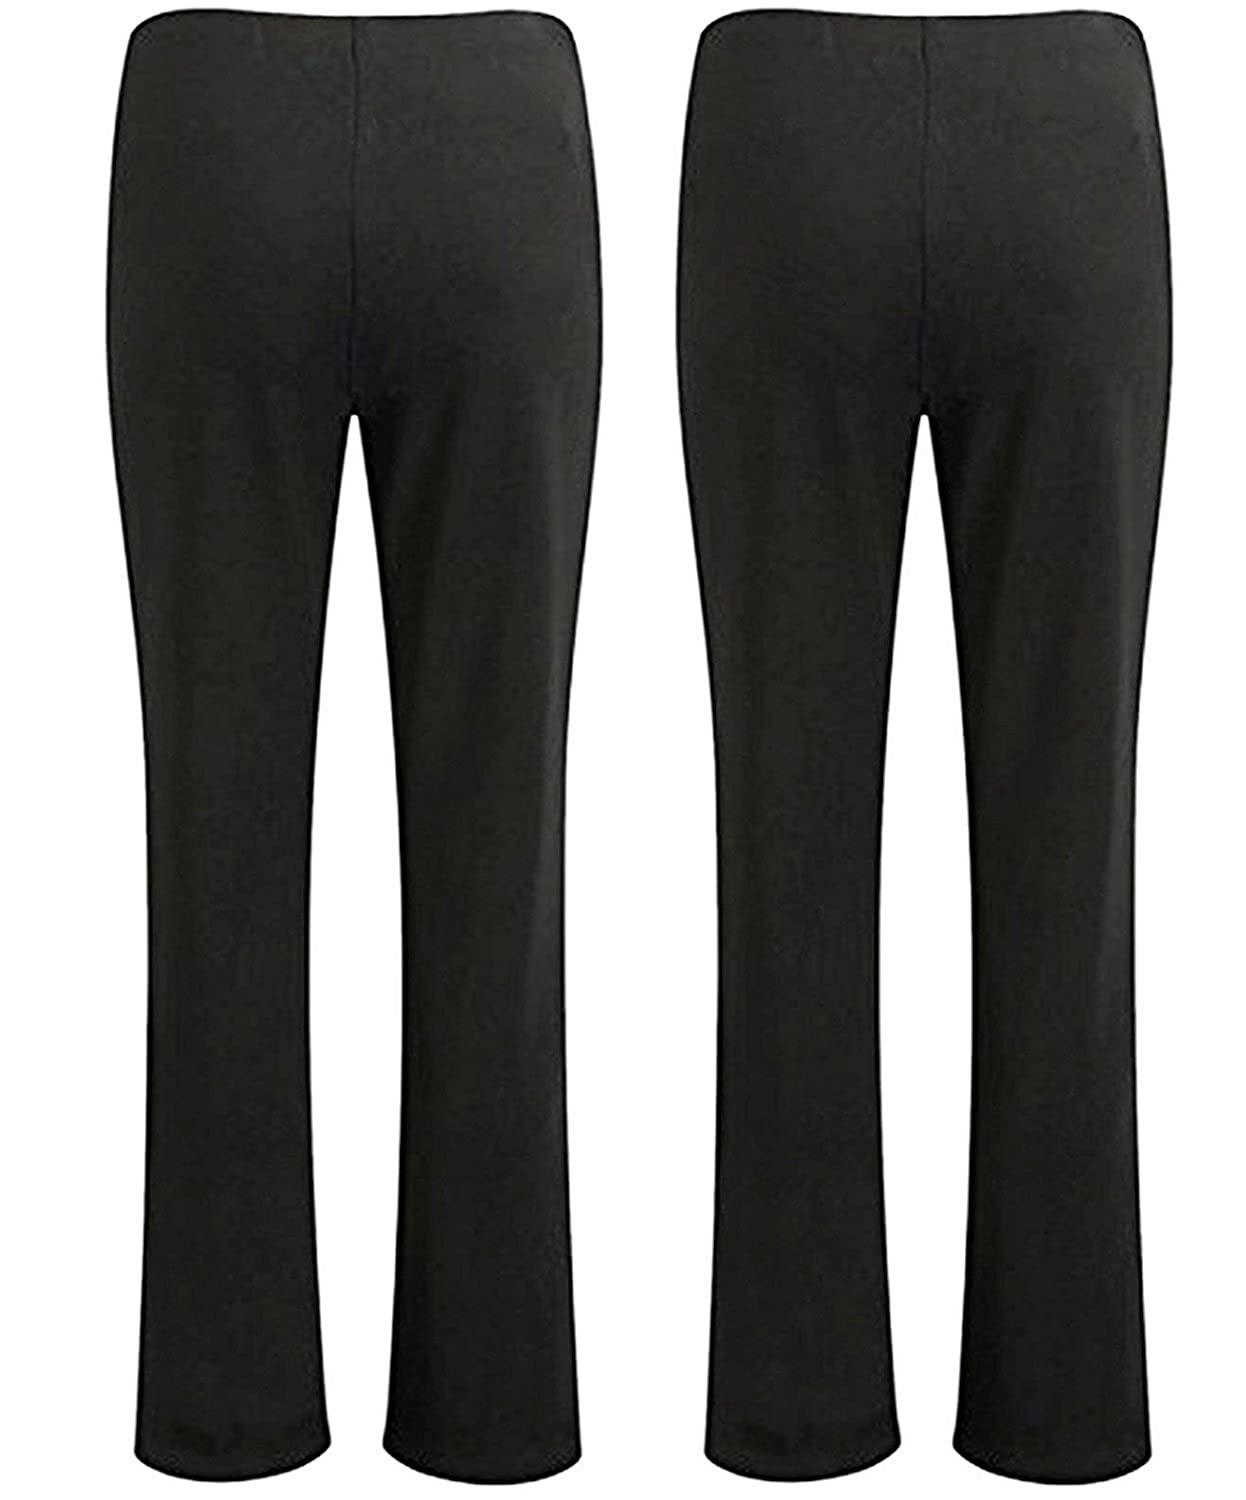 7e7975208e2 Shop Online Womens Elasticated Waist Stretch Ribbed Bootleg Trousers Ladies  Pull ON Pants Finely Ribbed Nurse Carer Worker Plus Size Bottoms Big Sizes   ...